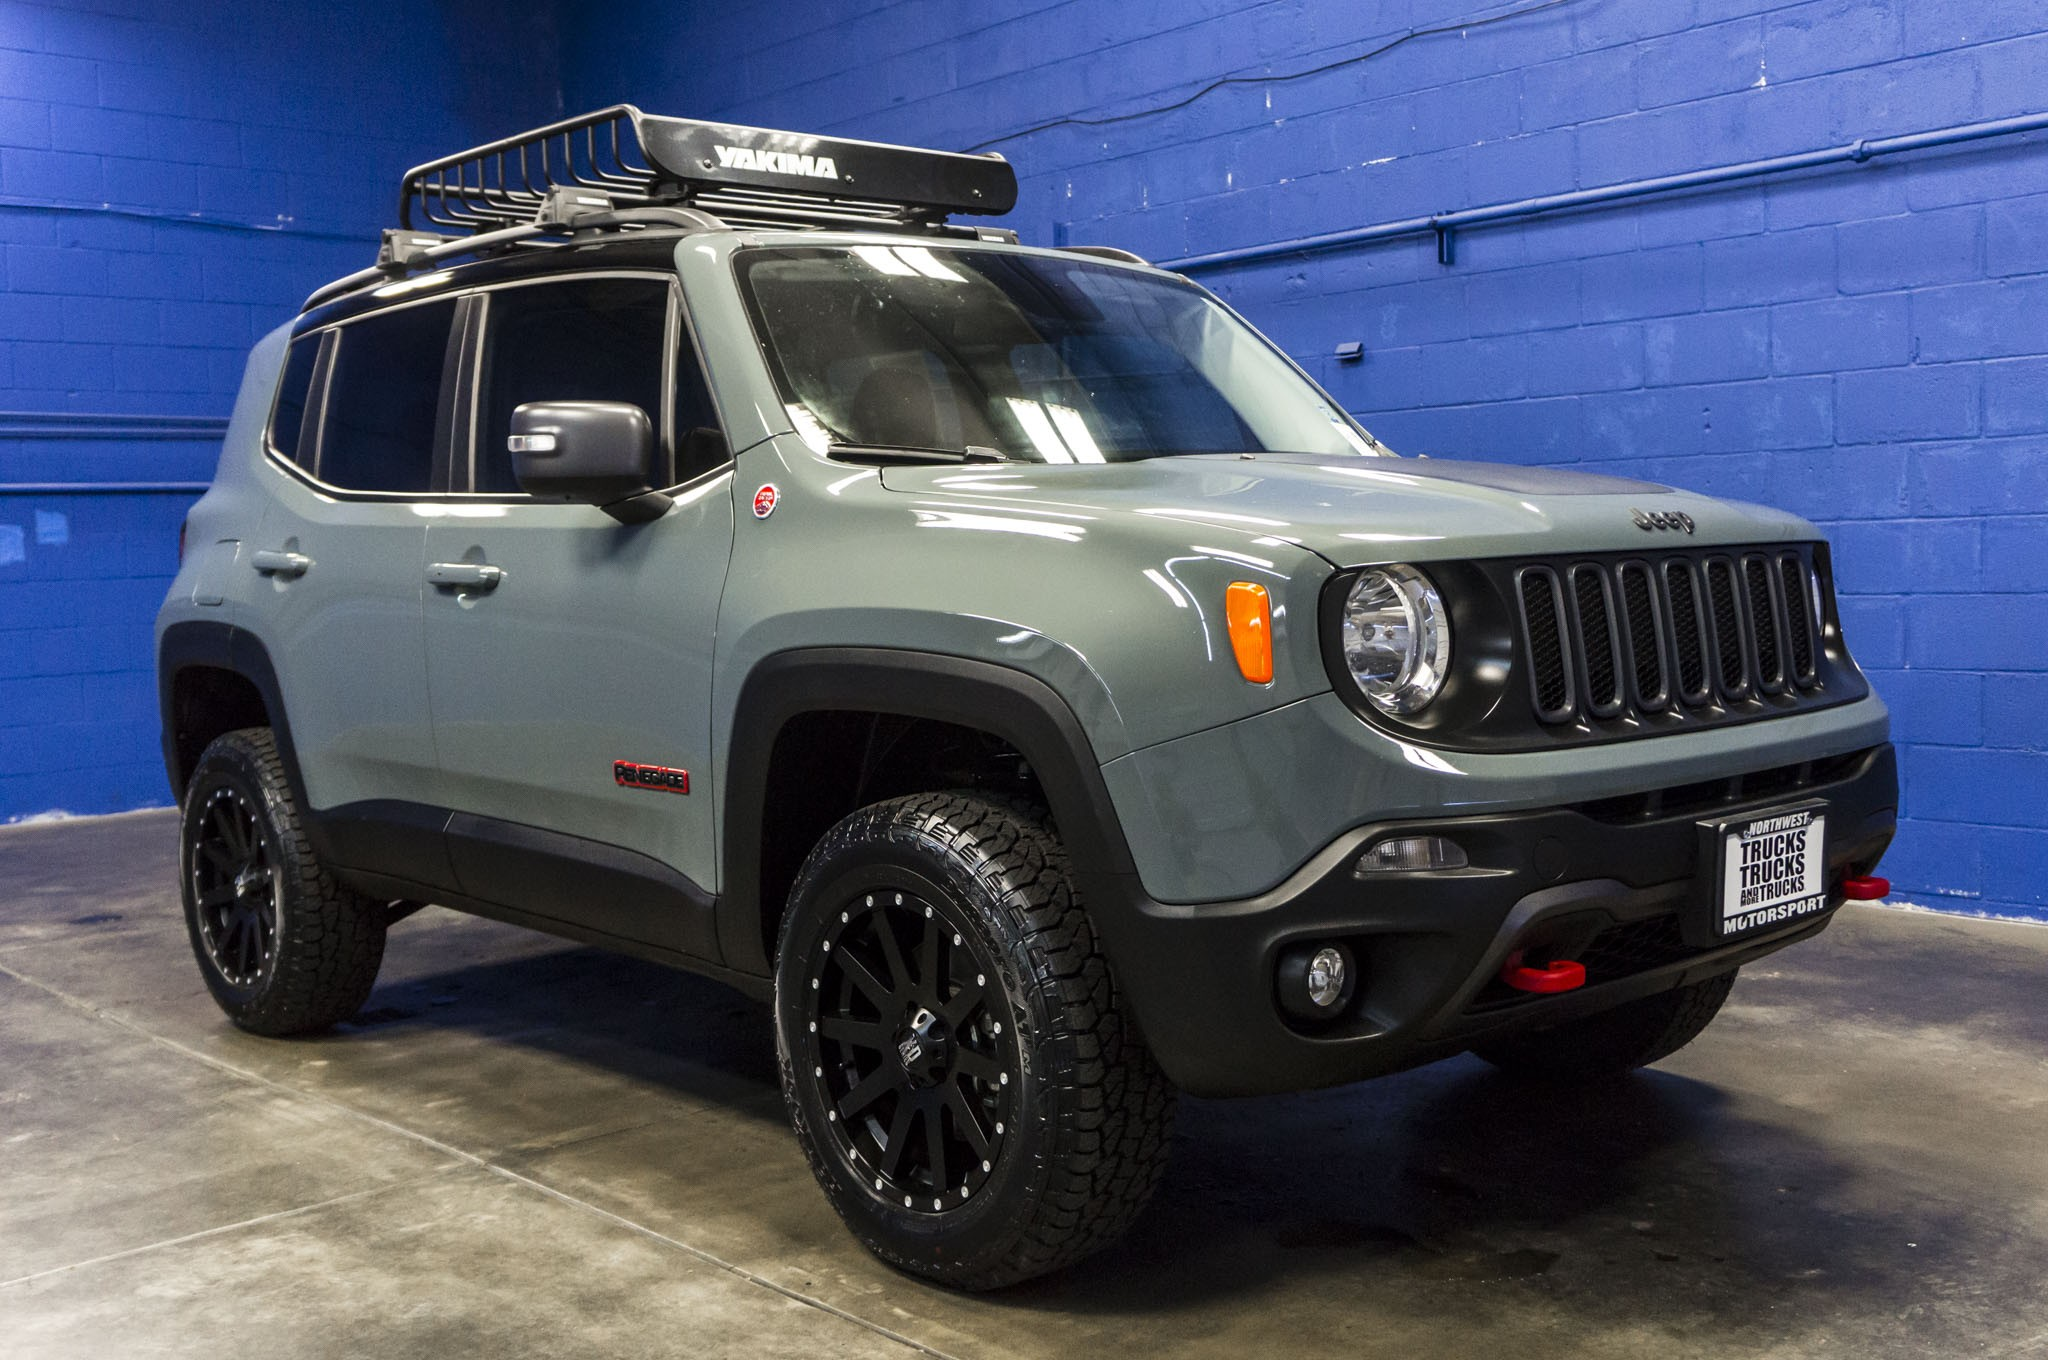 Jeep Renegade Trailhawk Lift >> Used Lifted 2016 Jeep Renegade Trailhawk 4x4 Suv For Sale 34271